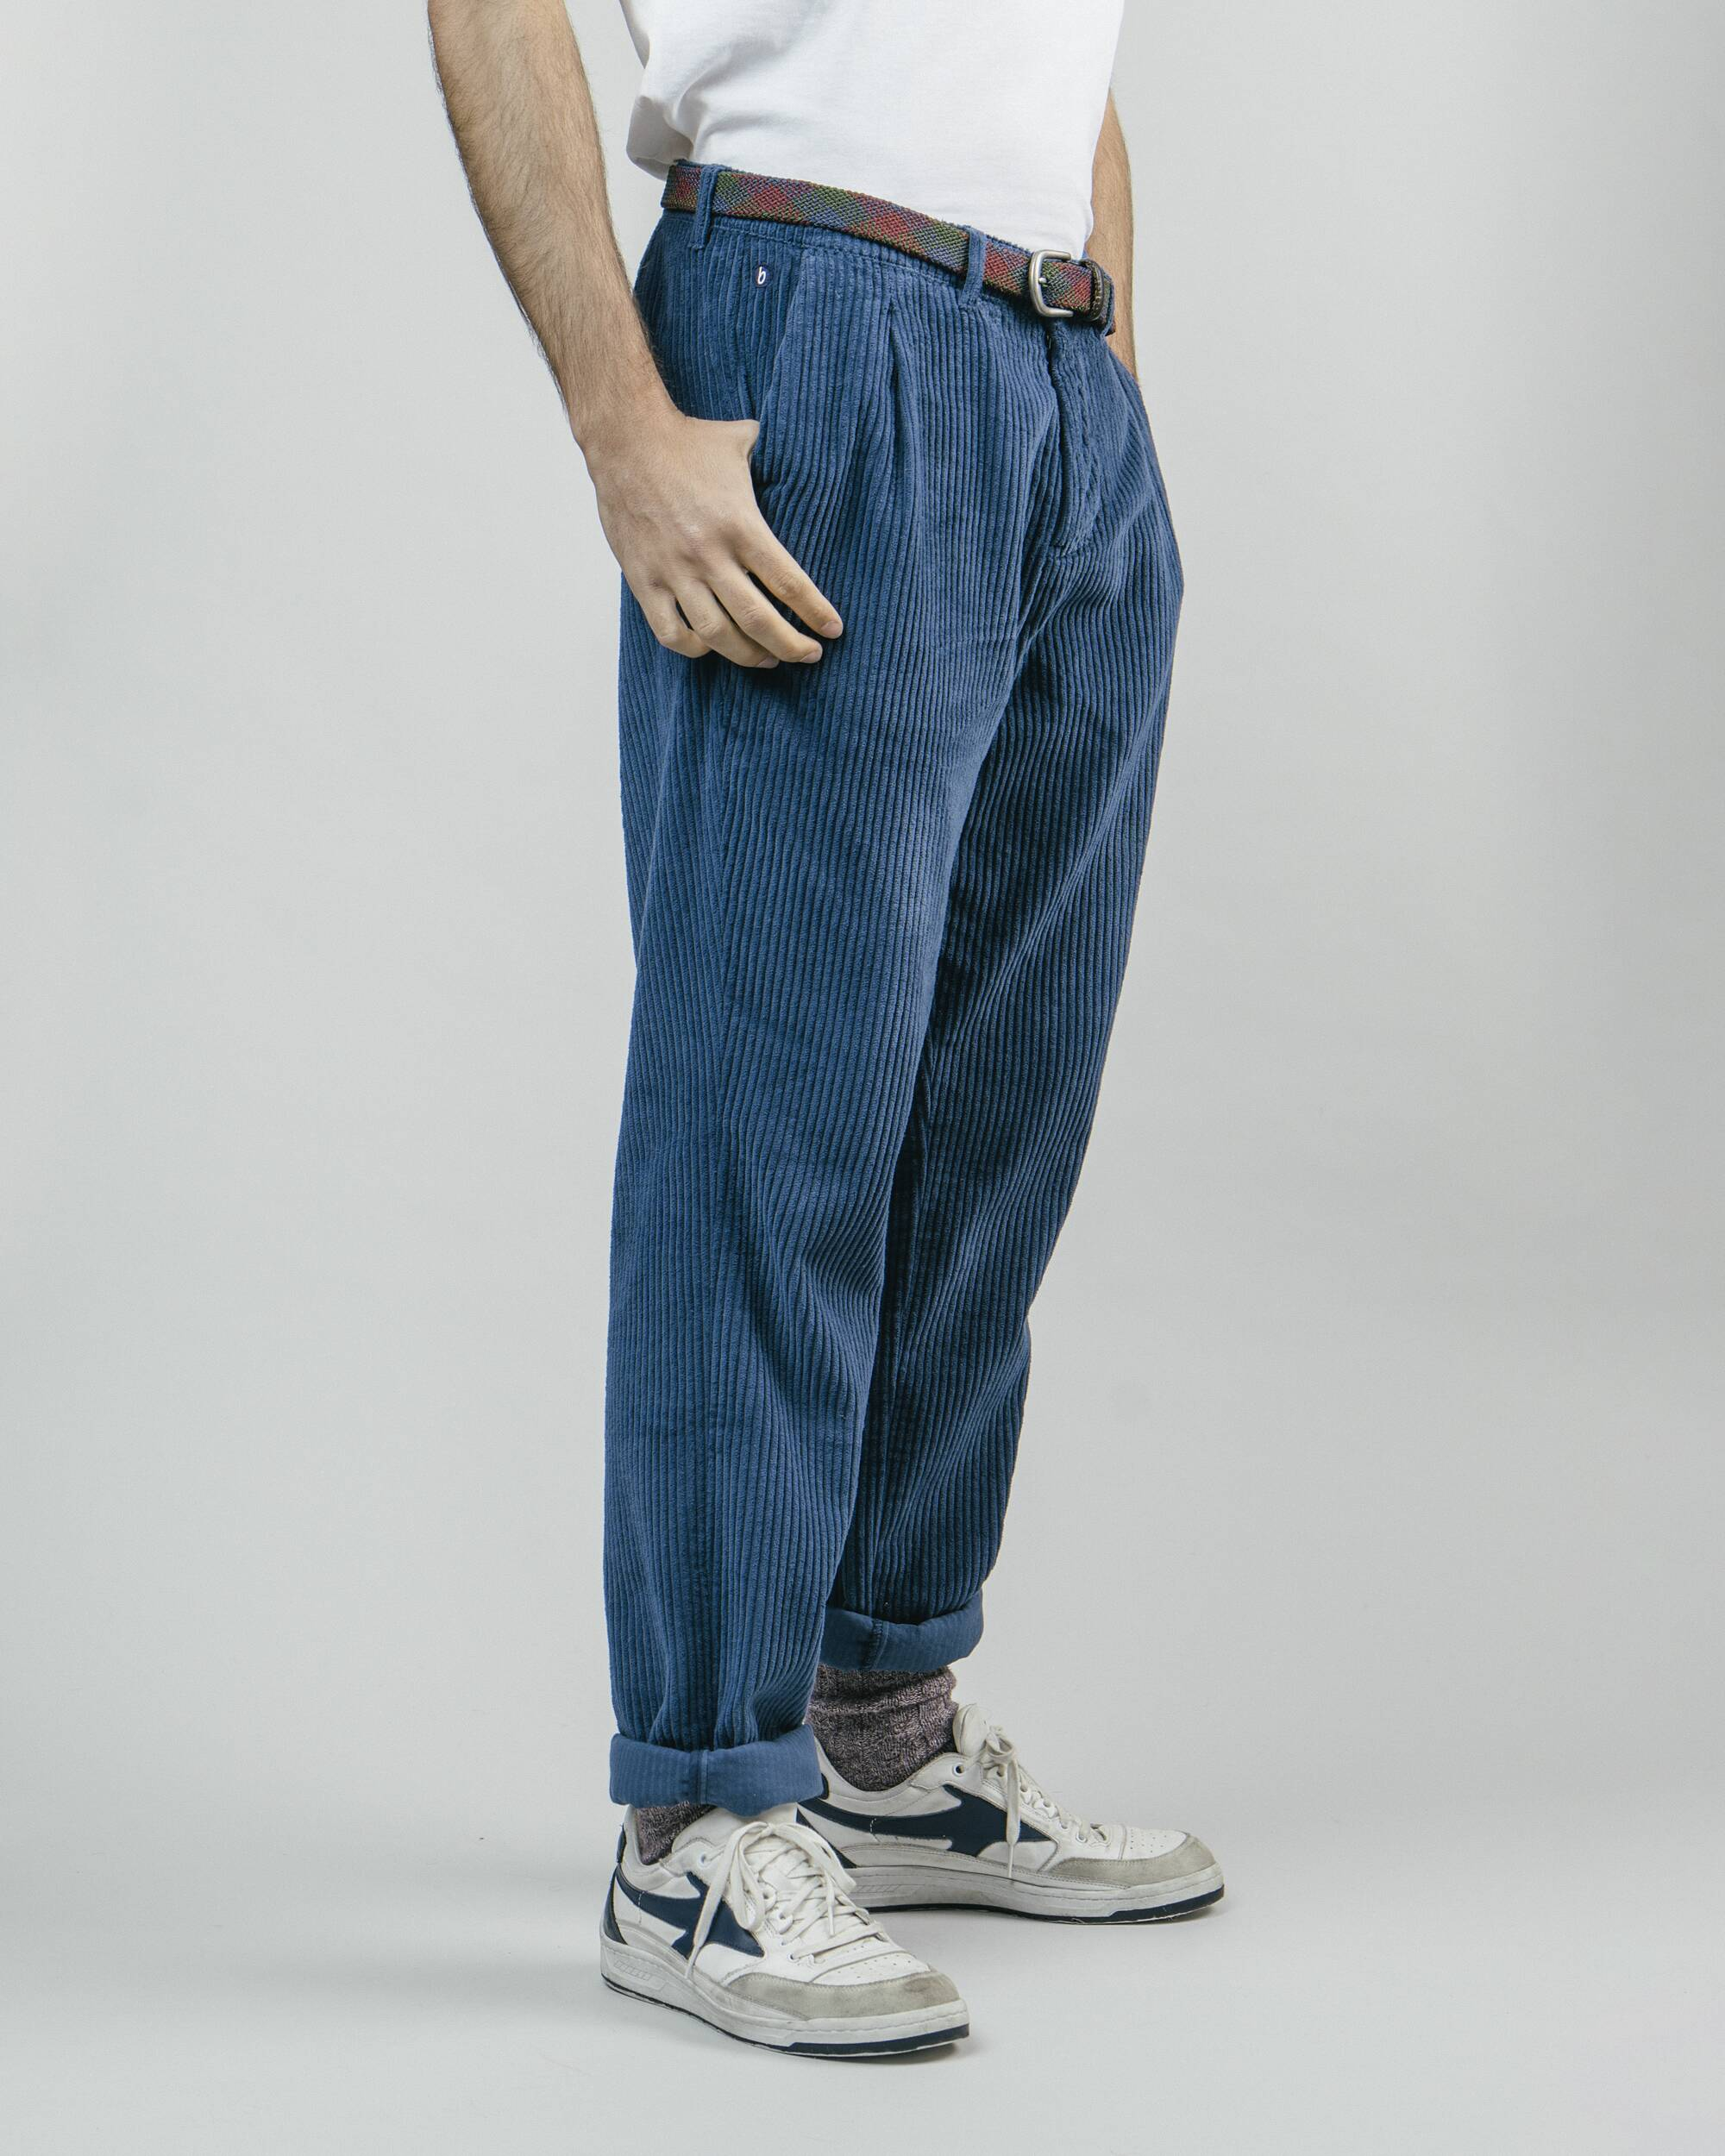 Brava Fabrics - Corduroy Pants - Corduroy Pants for Men - 100% Organic Cotton - Model Corduroy Navy